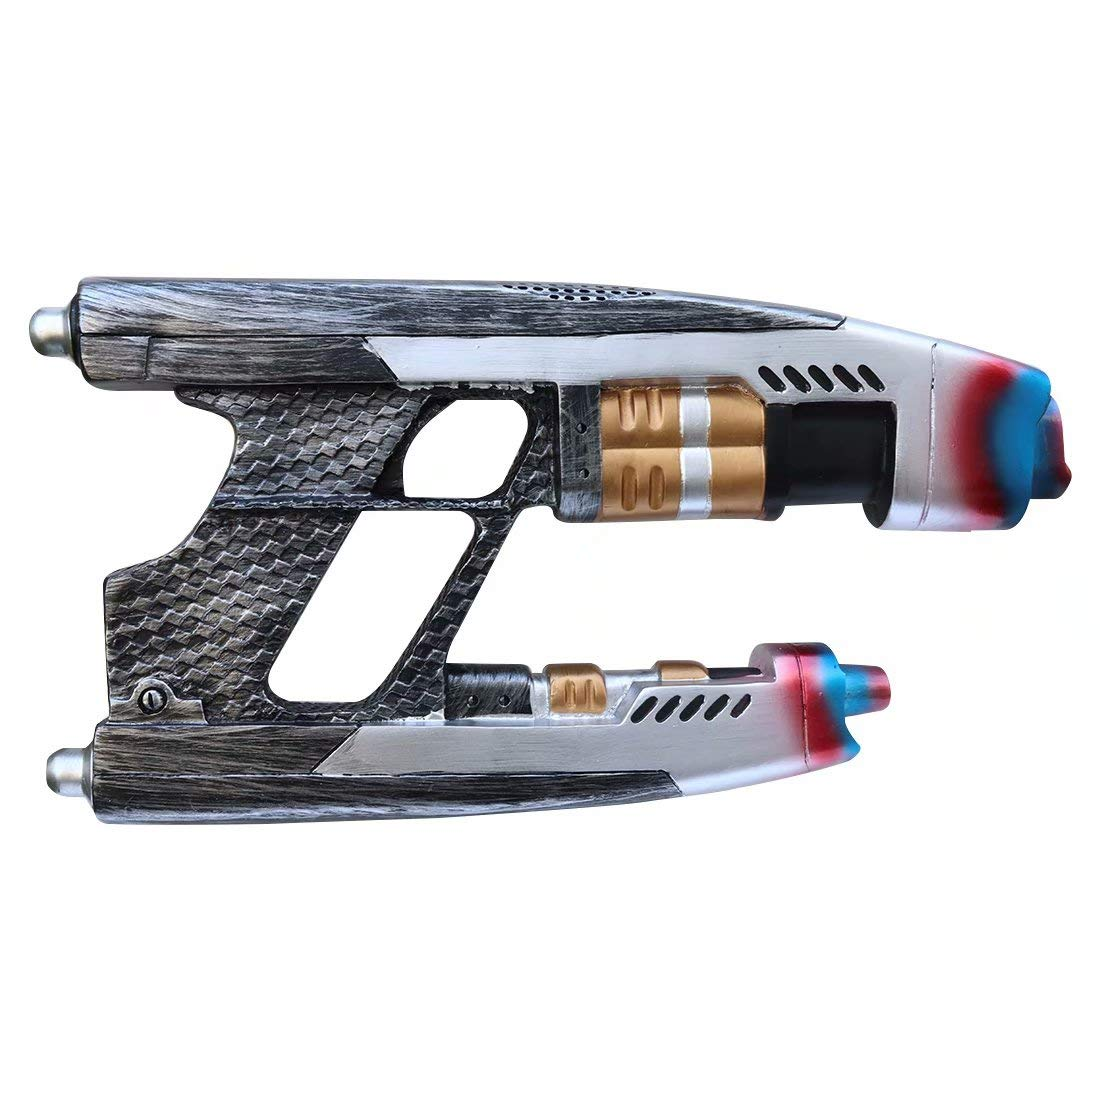 2Pcs Star Lord G#un Resin Blaster Replica Gun for The Galaxy Guardians Peter Quill Gun Weapon for Halloween Cosplay Men Women Girls Boys Kids Children (1 PCS, One Size)